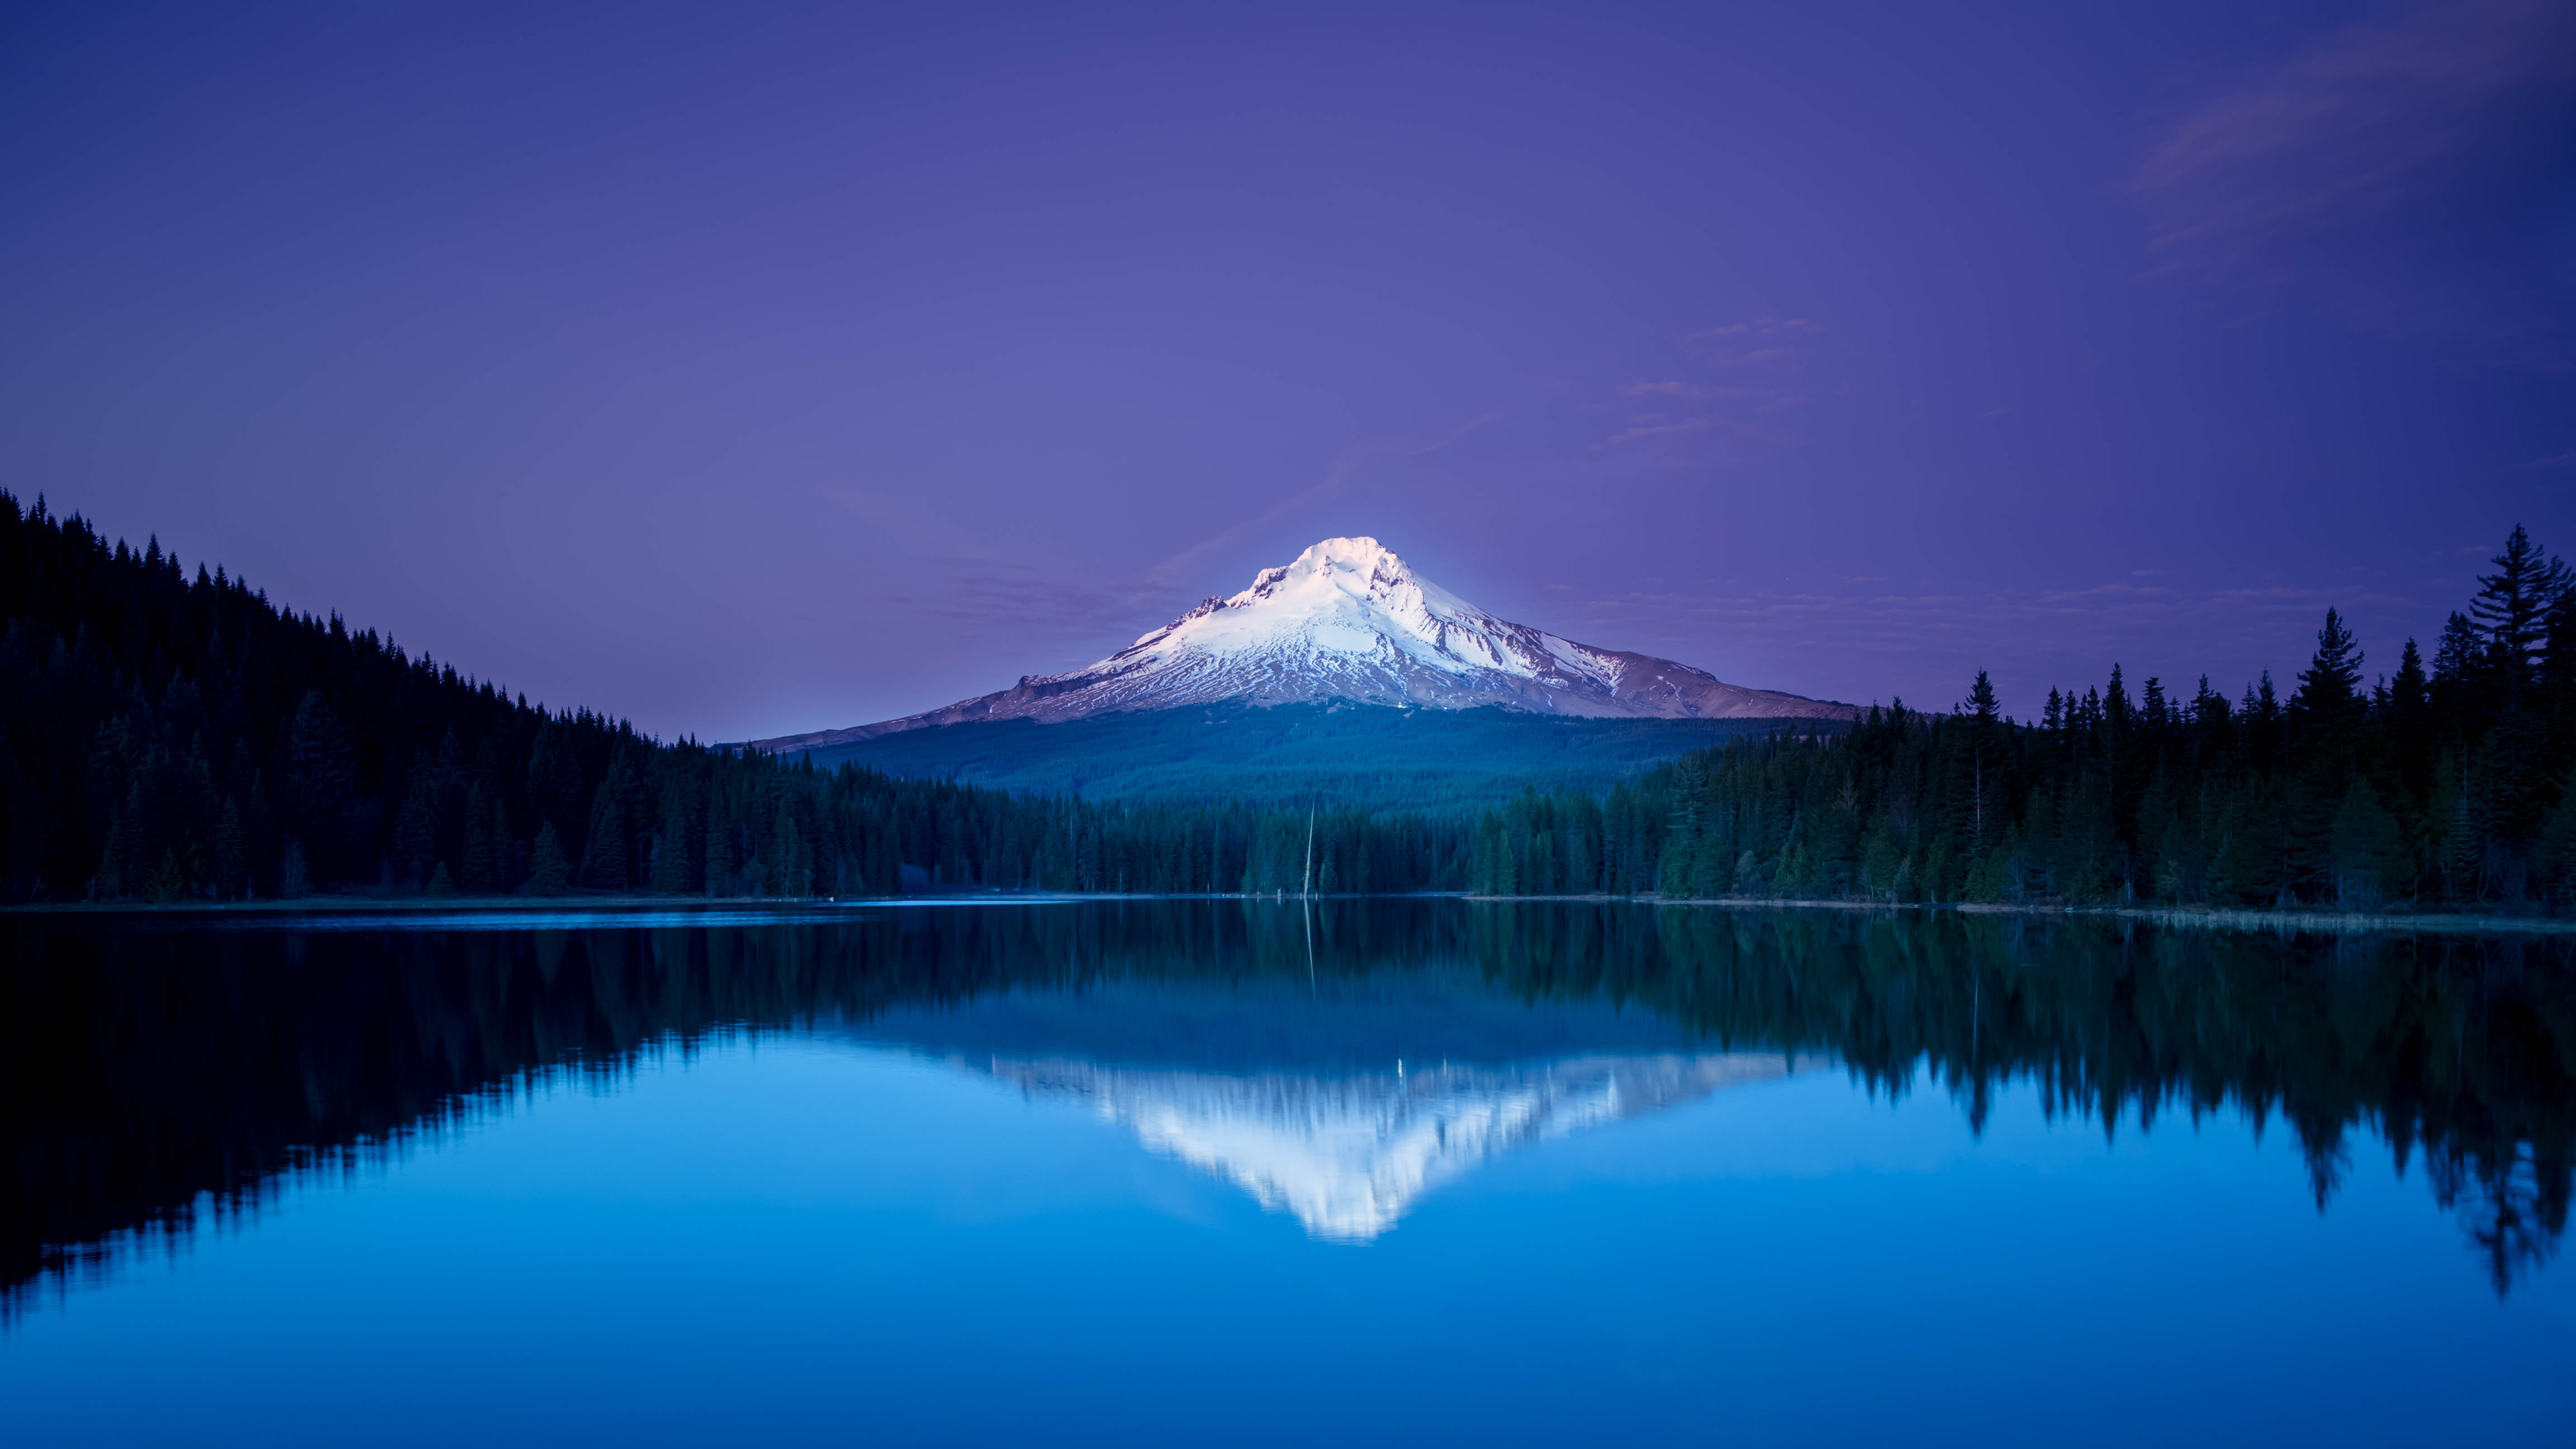 Beautiful 4k Wallpaper 4096 2160: Mountain Reflection 4K Ultra HD Wallpaper